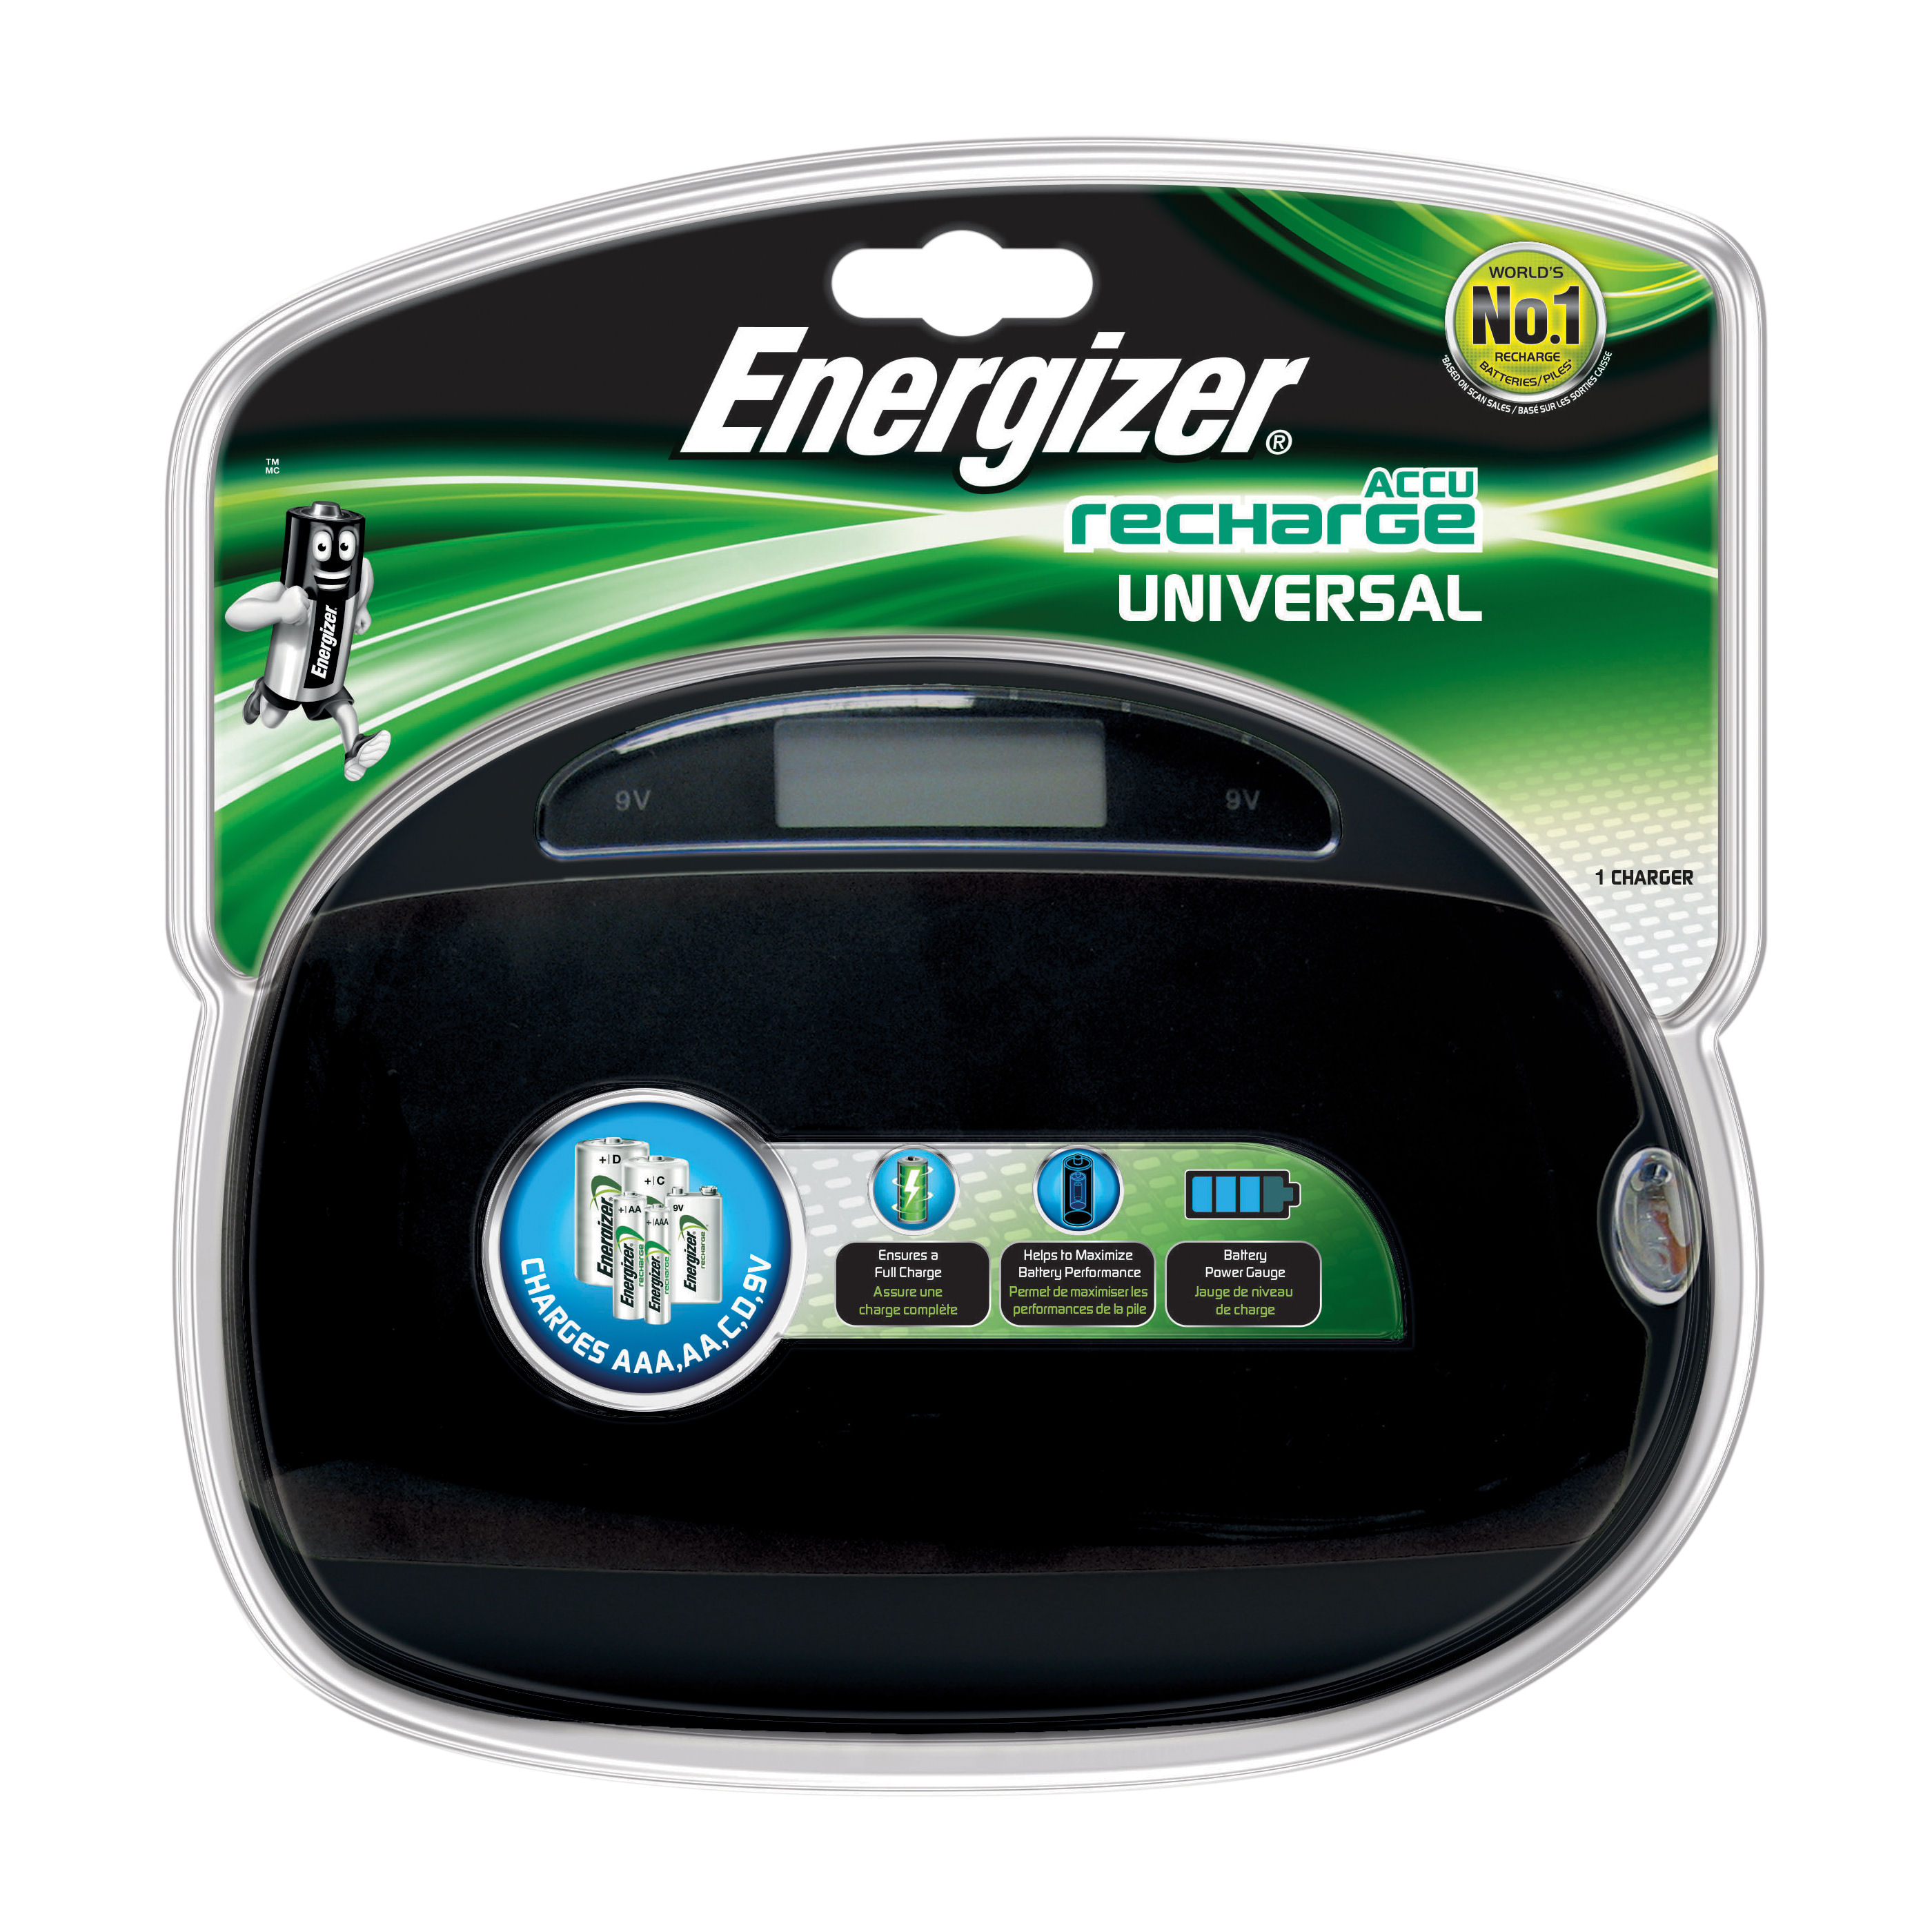 Energizer Universal Battery Charger 633156